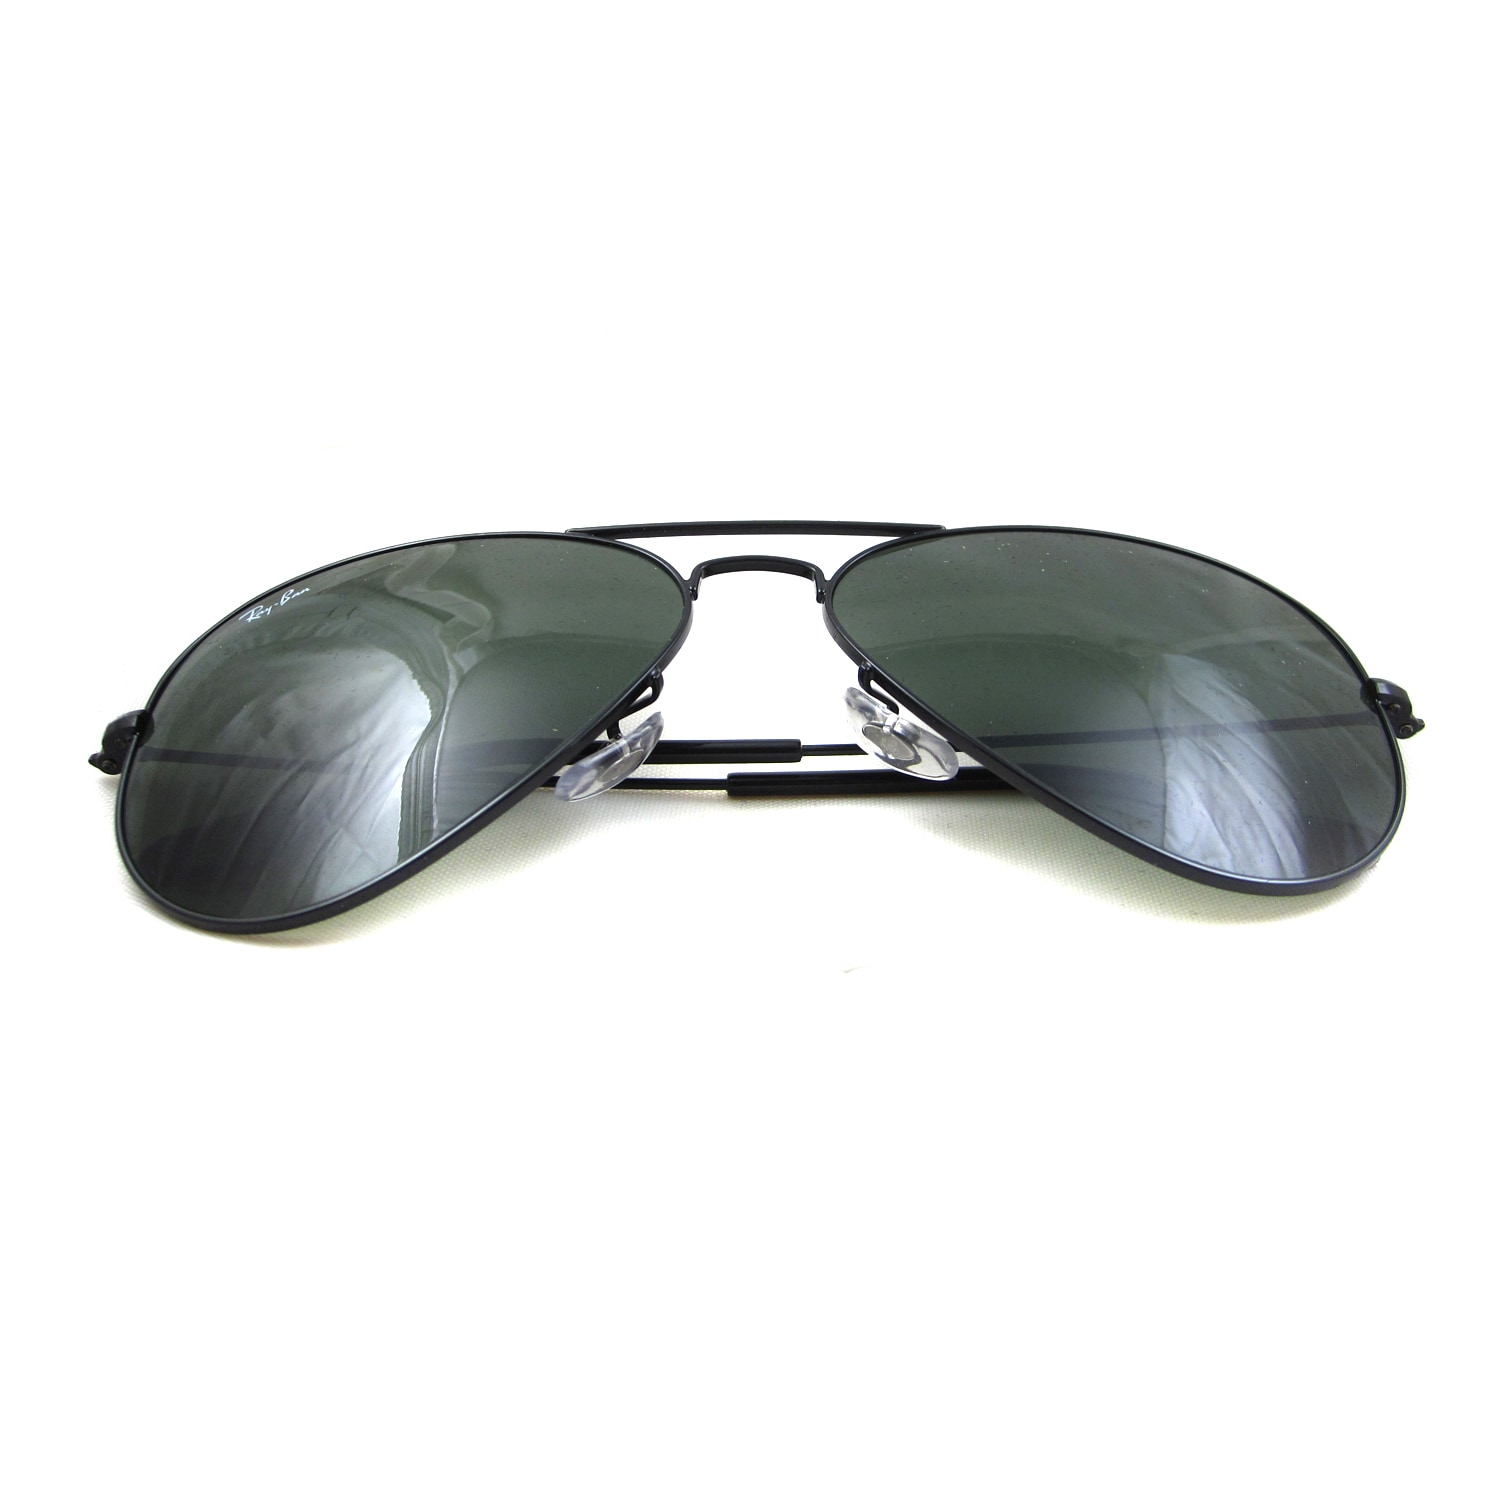 1172b1ec3d32b ... aviator rb3025 l2823 58mm green g 193e5 79459  get shop ray ban  sunglasses 3025 l2823 58 black free shipping today overstock 8657161 31f90  bd535